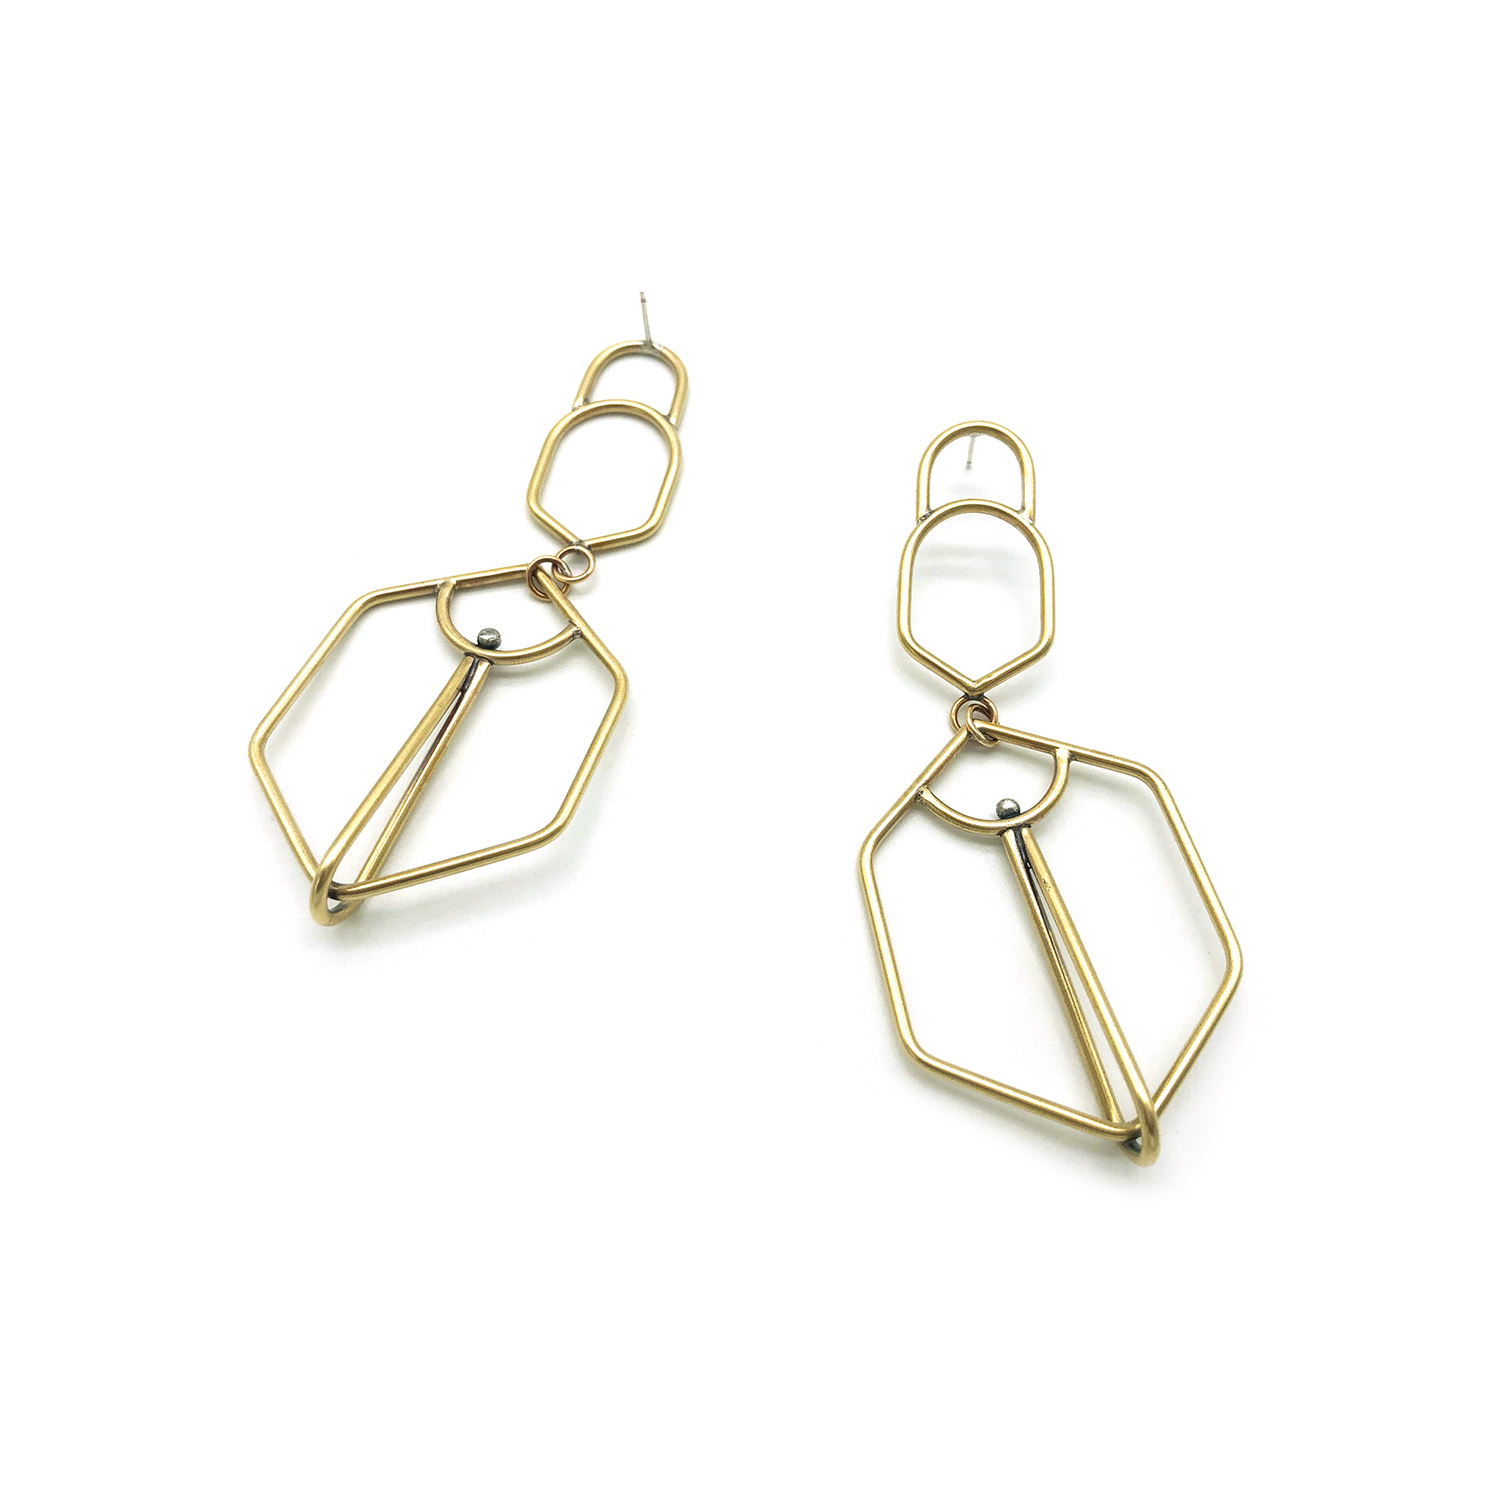 Brass and silver earrings.